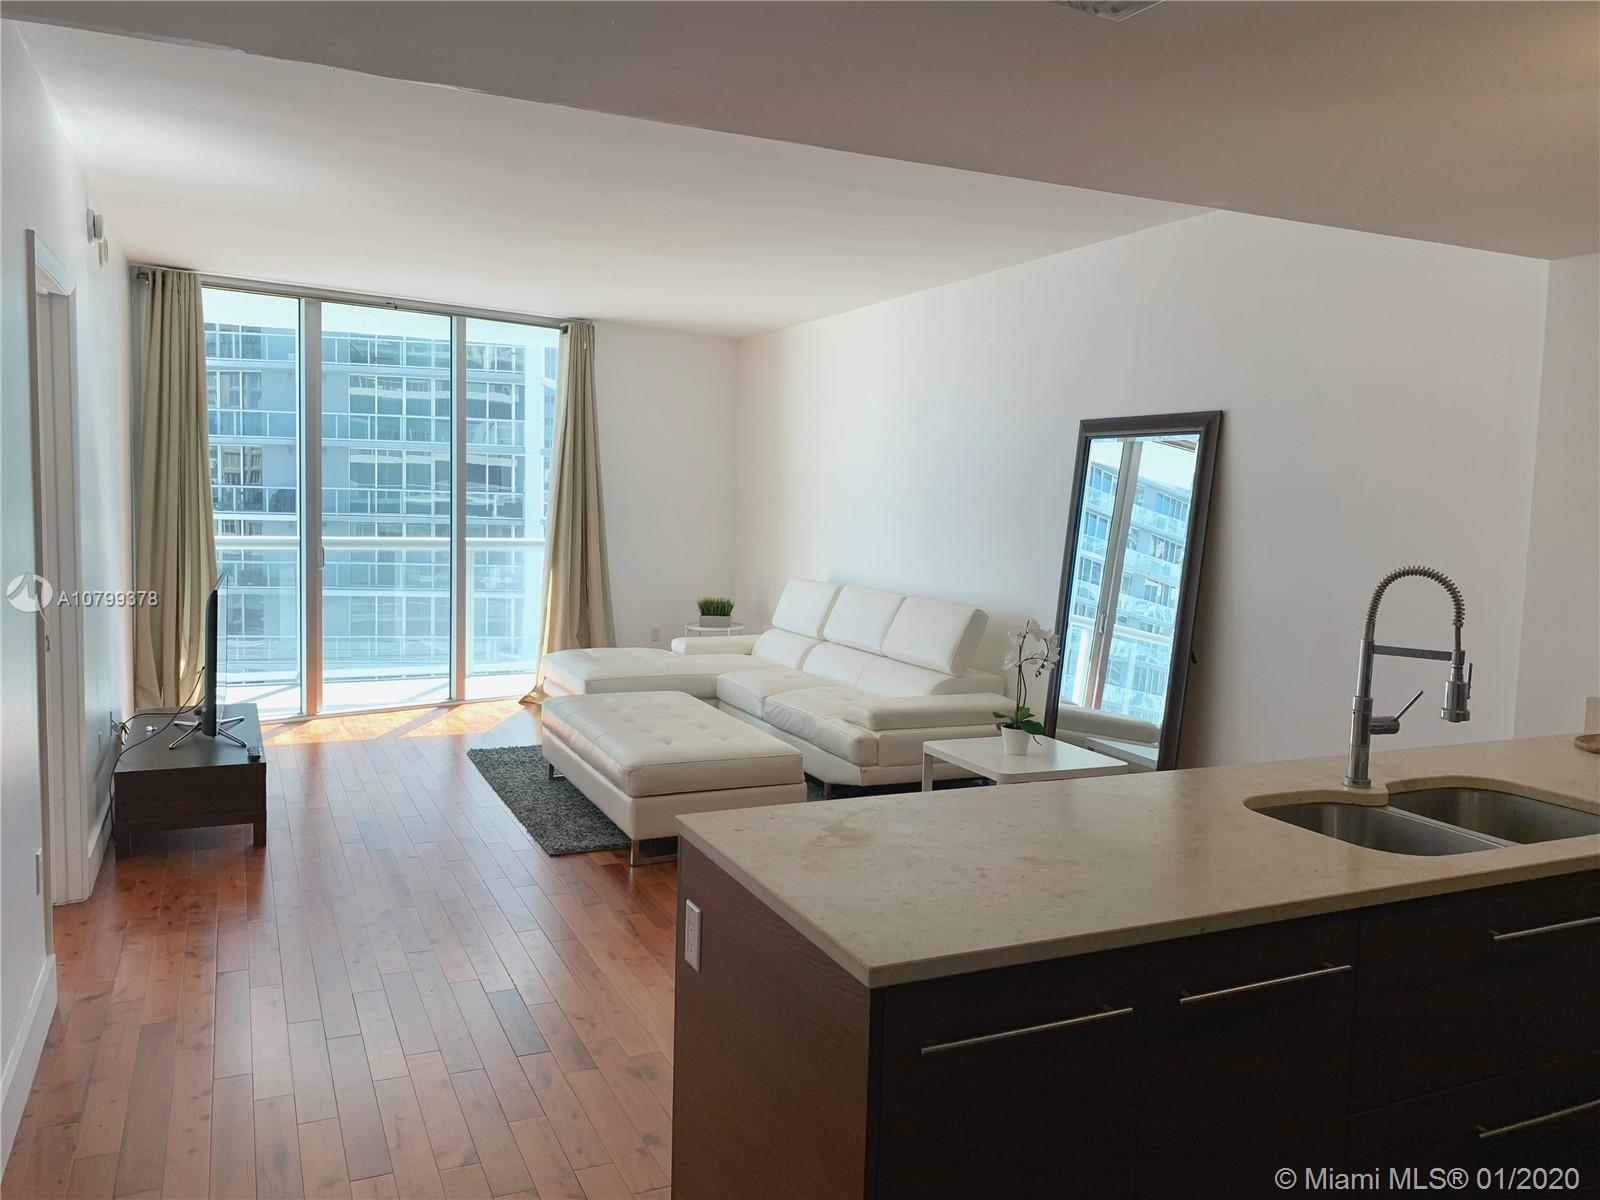 475  Brickell Ave #2711 For Sale A10799378, FL